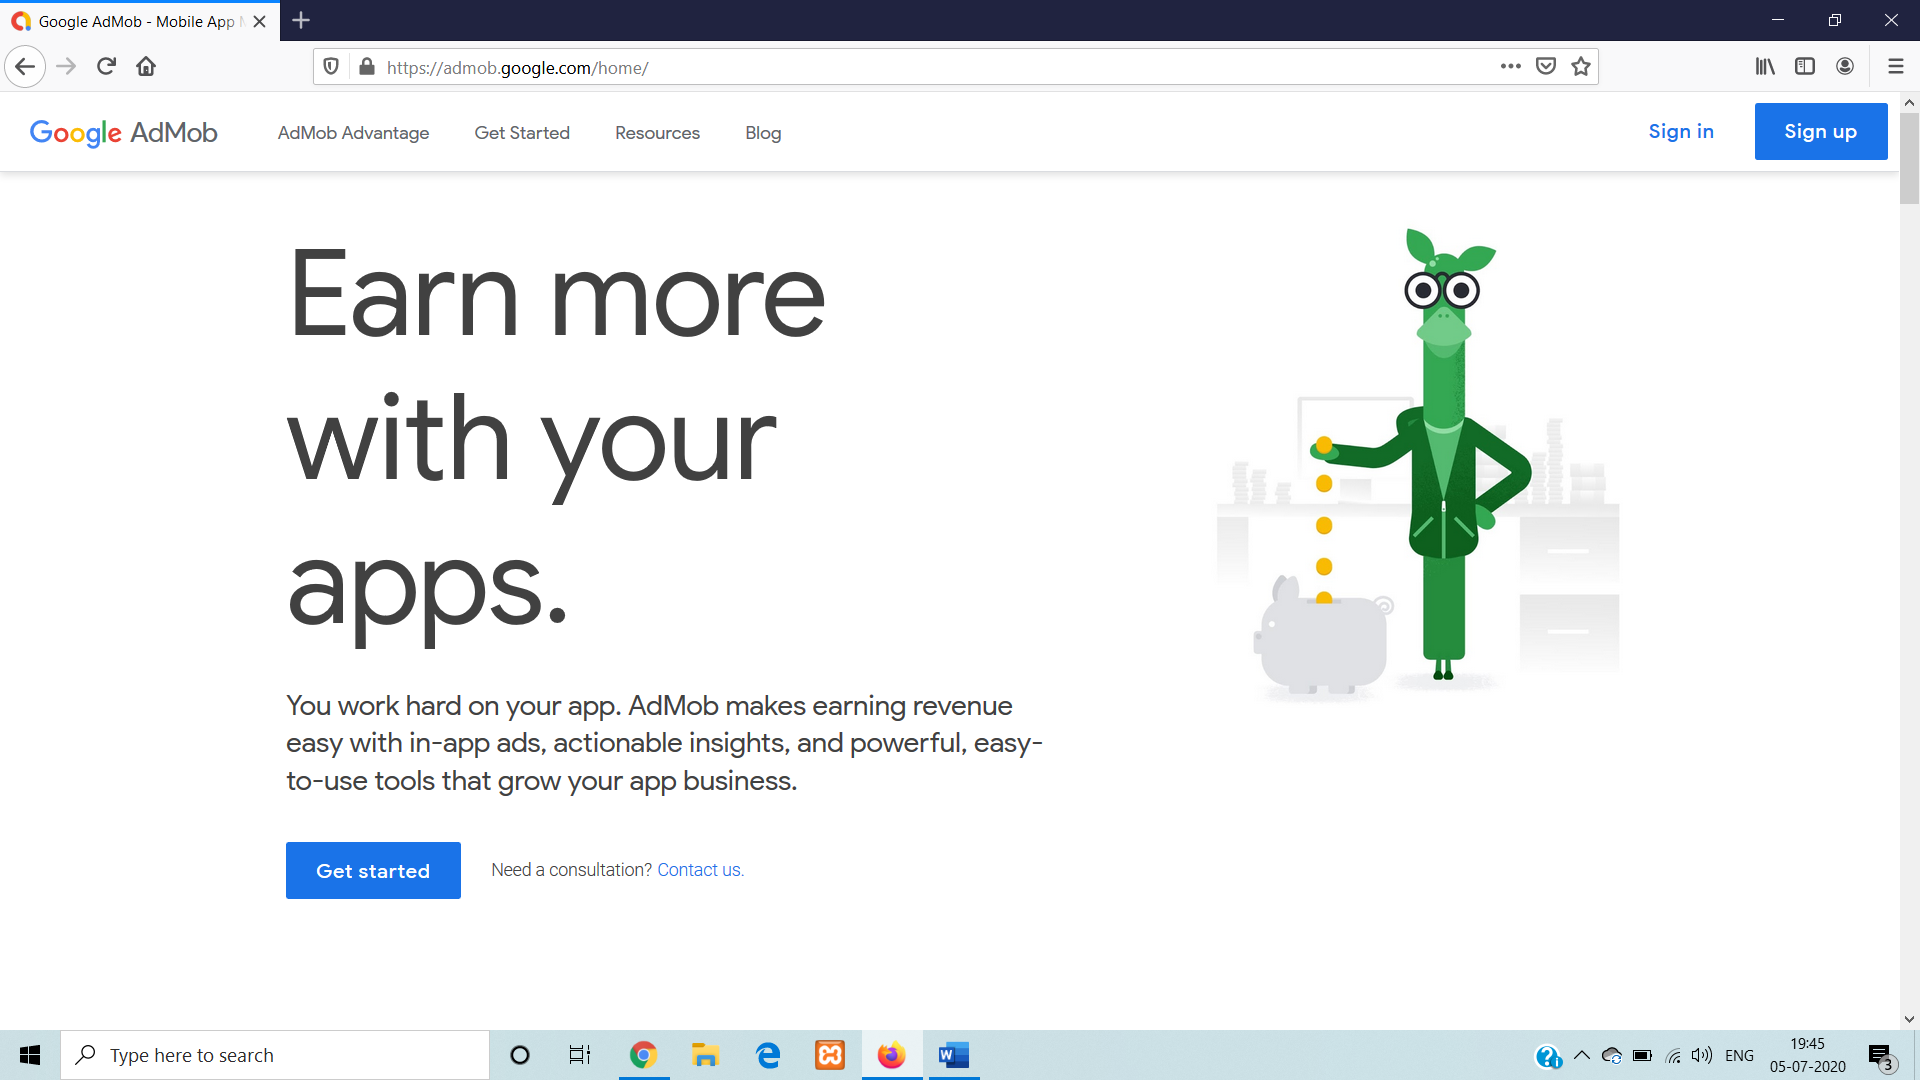 How to Make Money from Google AdMob Apps